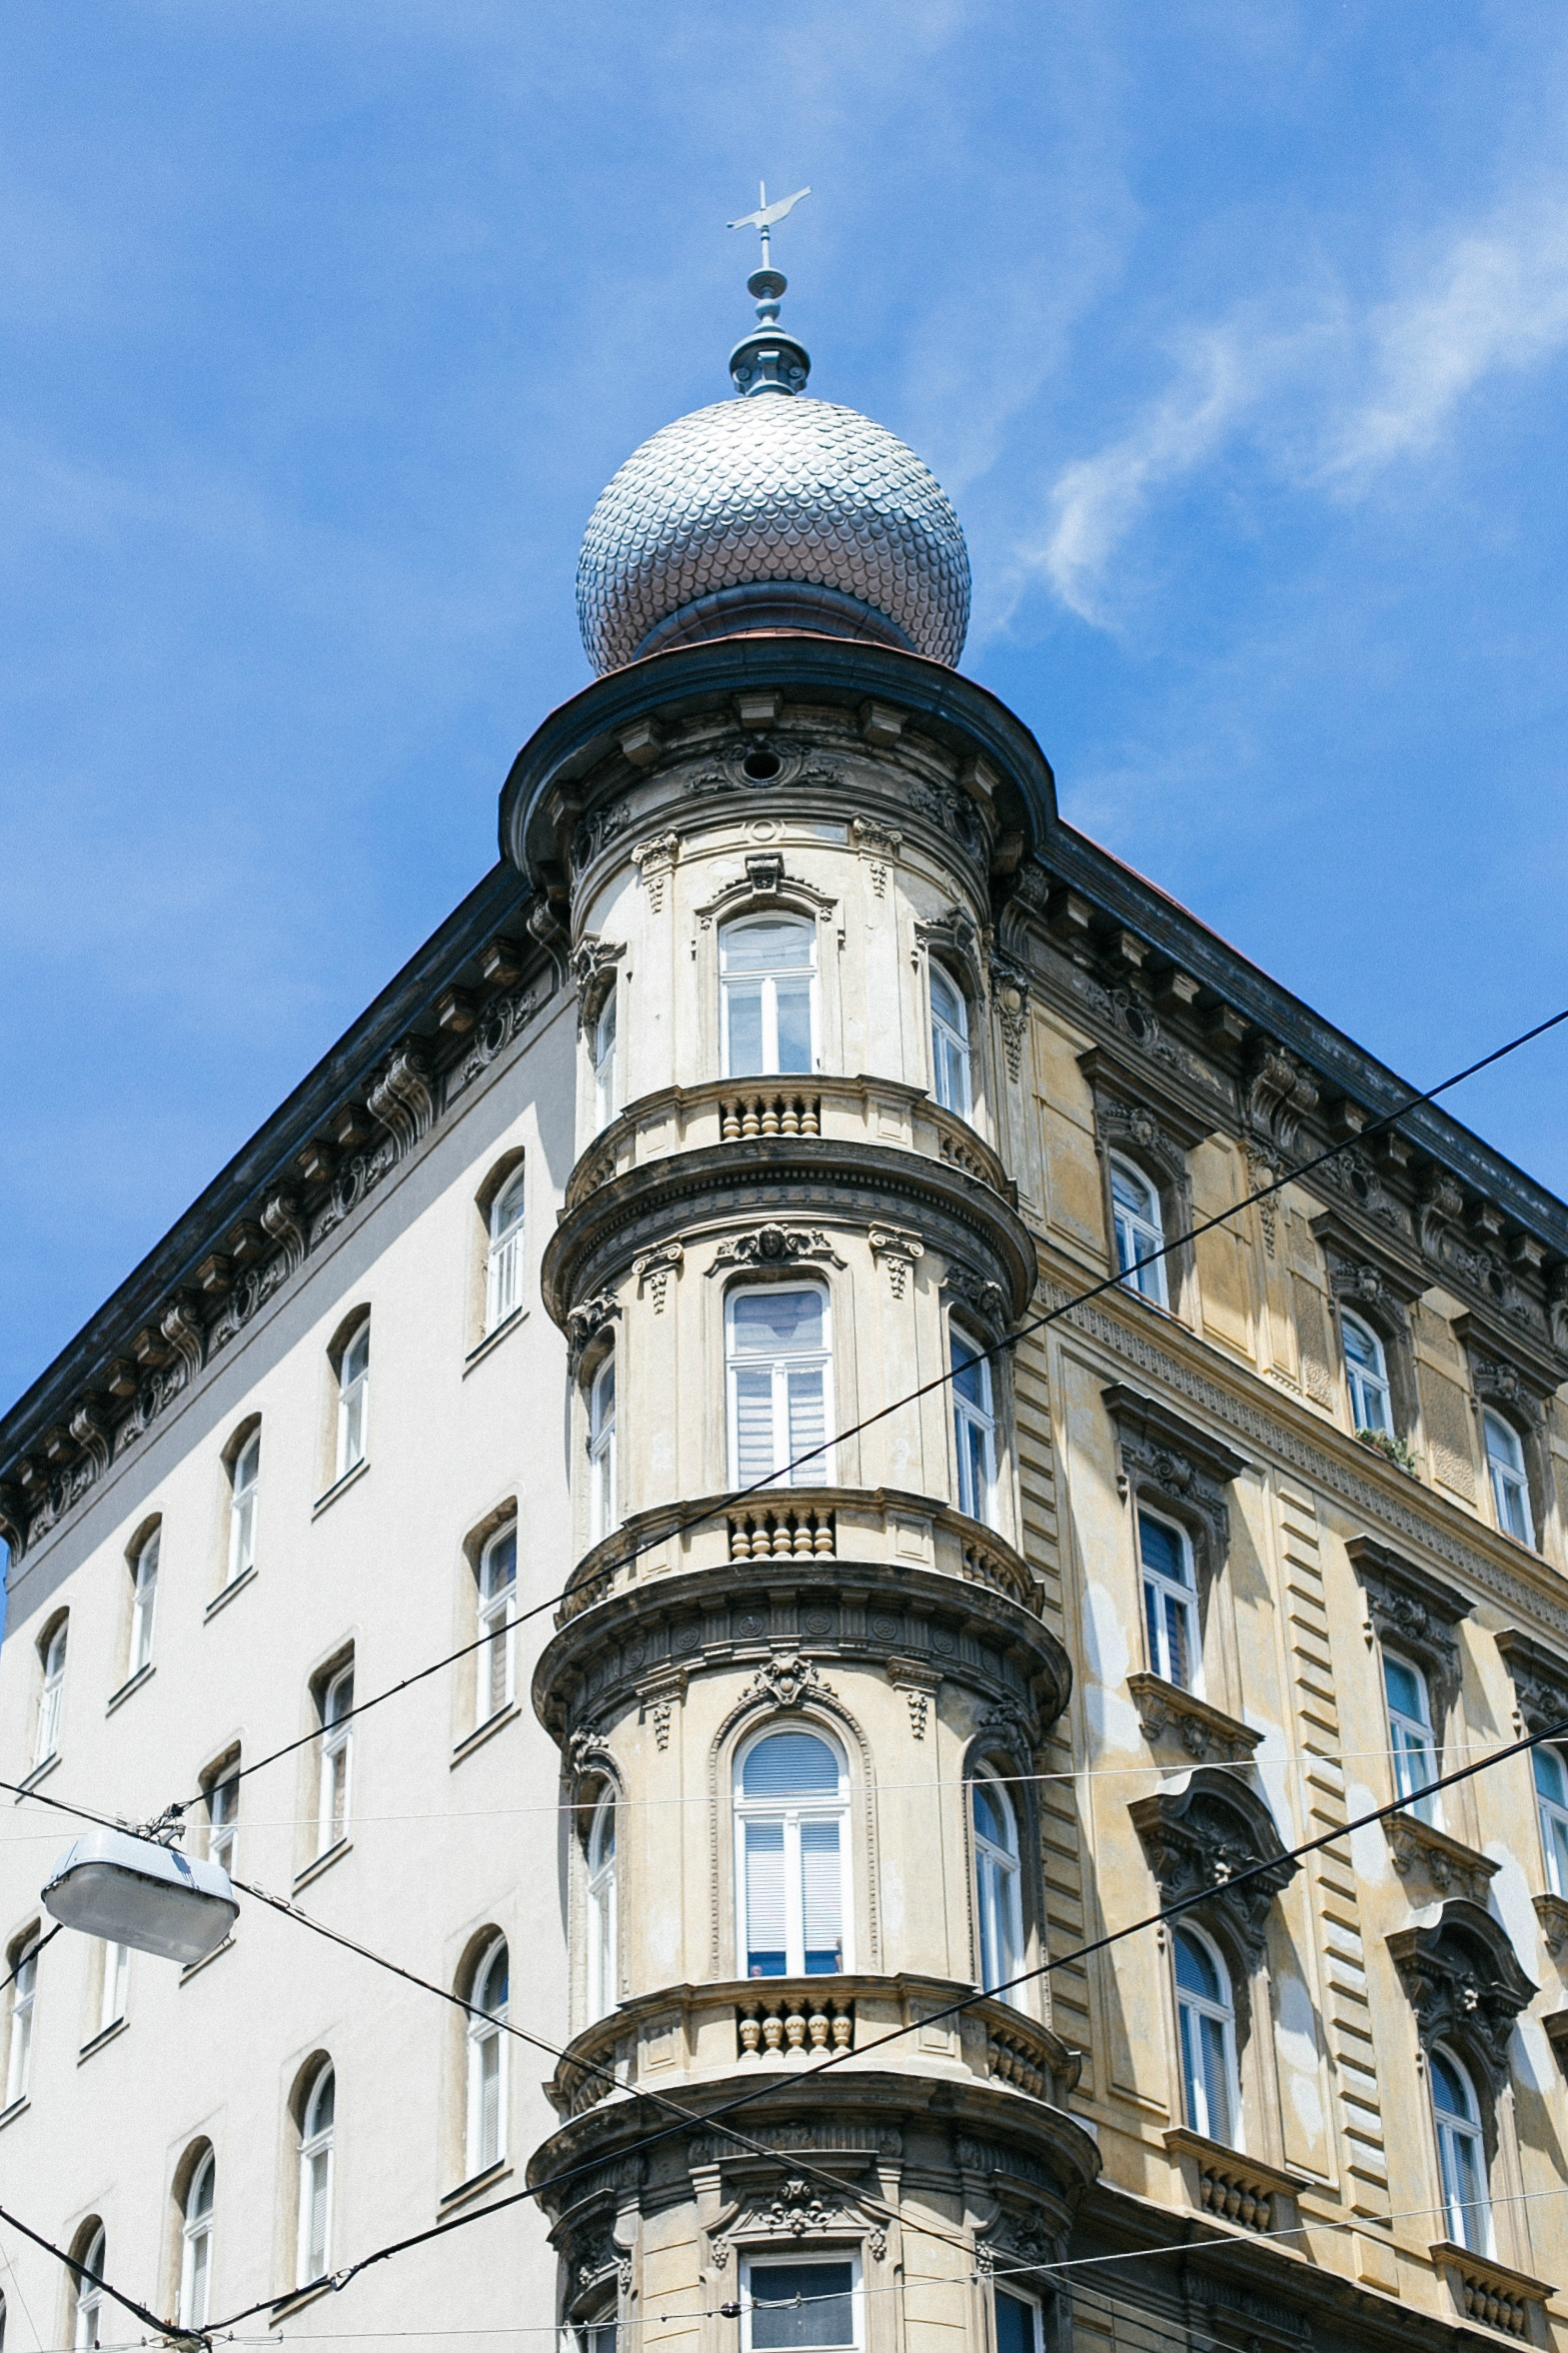 airbnb-hosting-vienna-austria-appartments-for-rent-disicouture-11